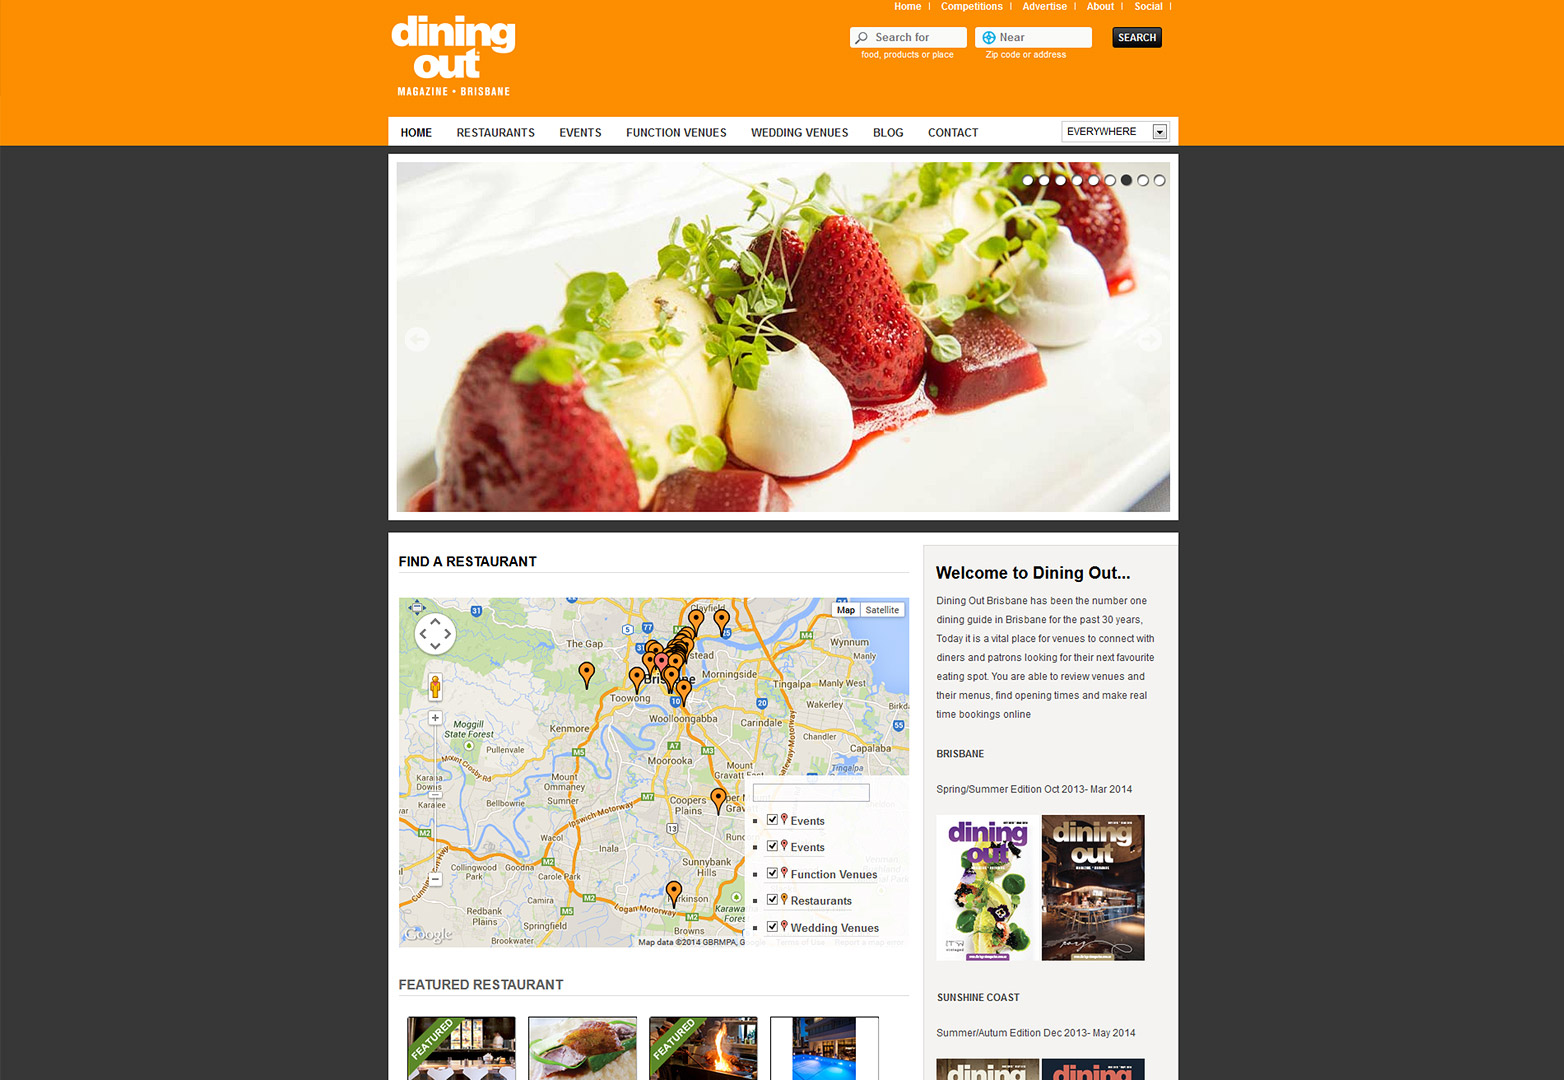 Dining Out Magazine Brisbane's homepage